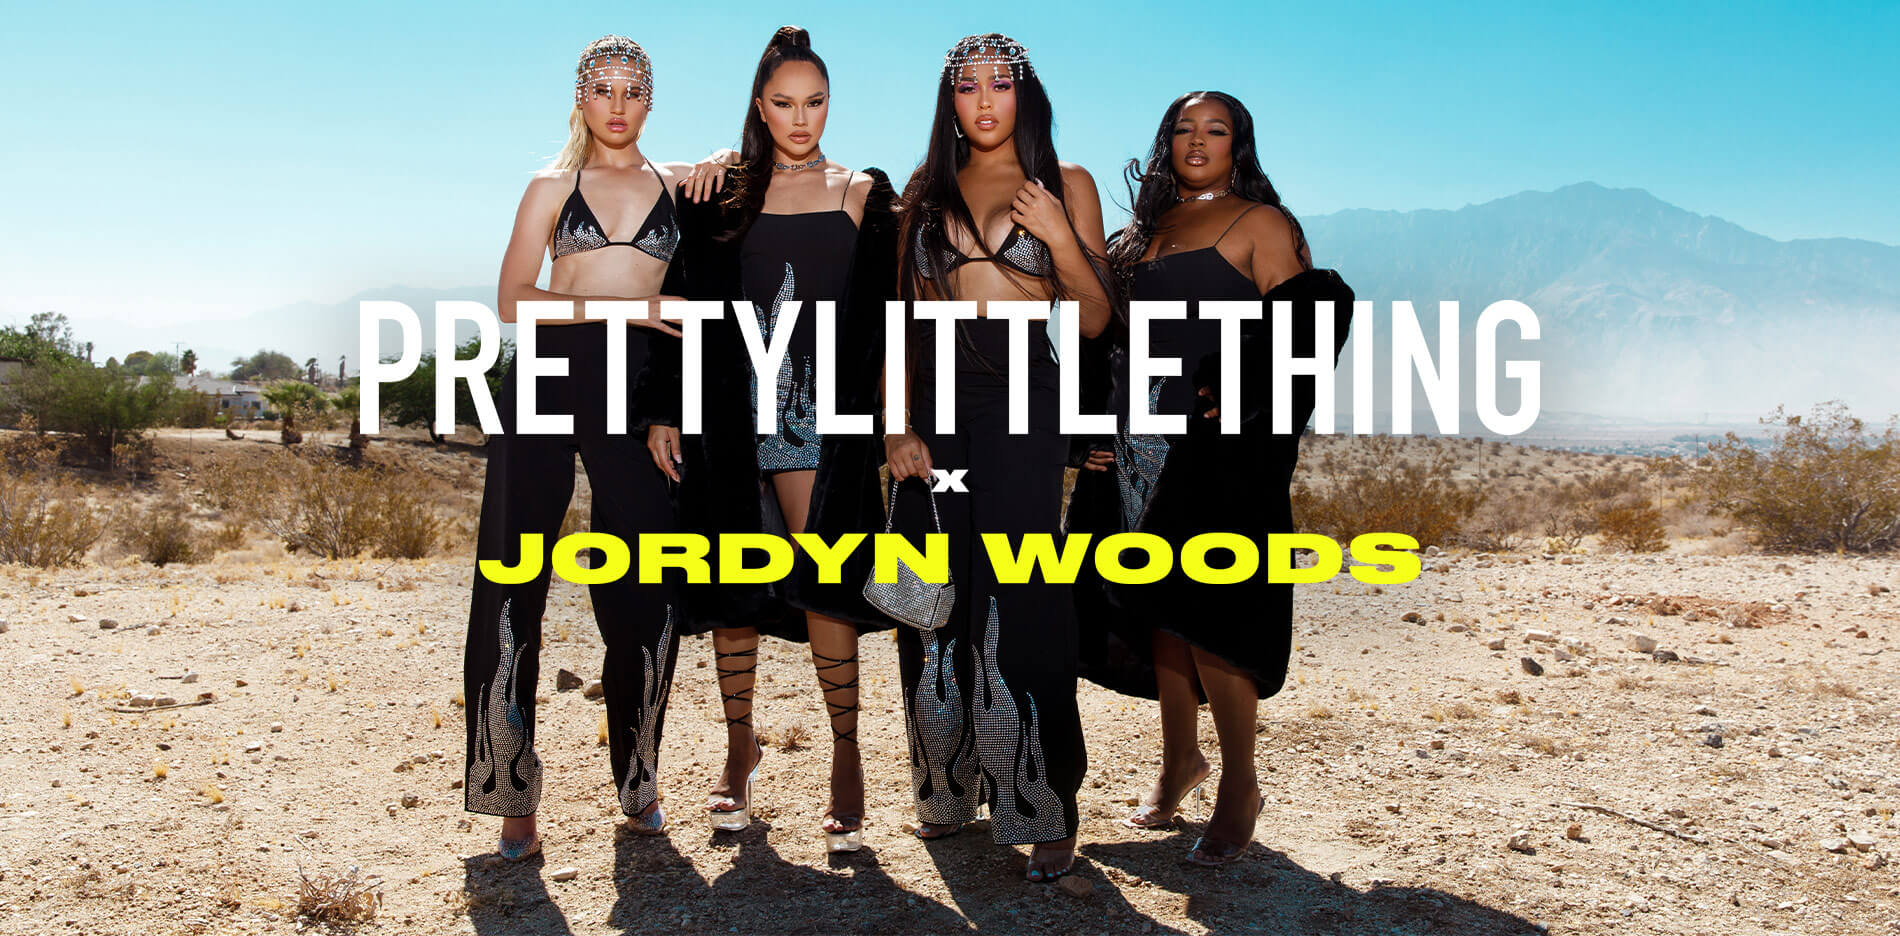 Jordyn Woods Lookbook Desktop Splash